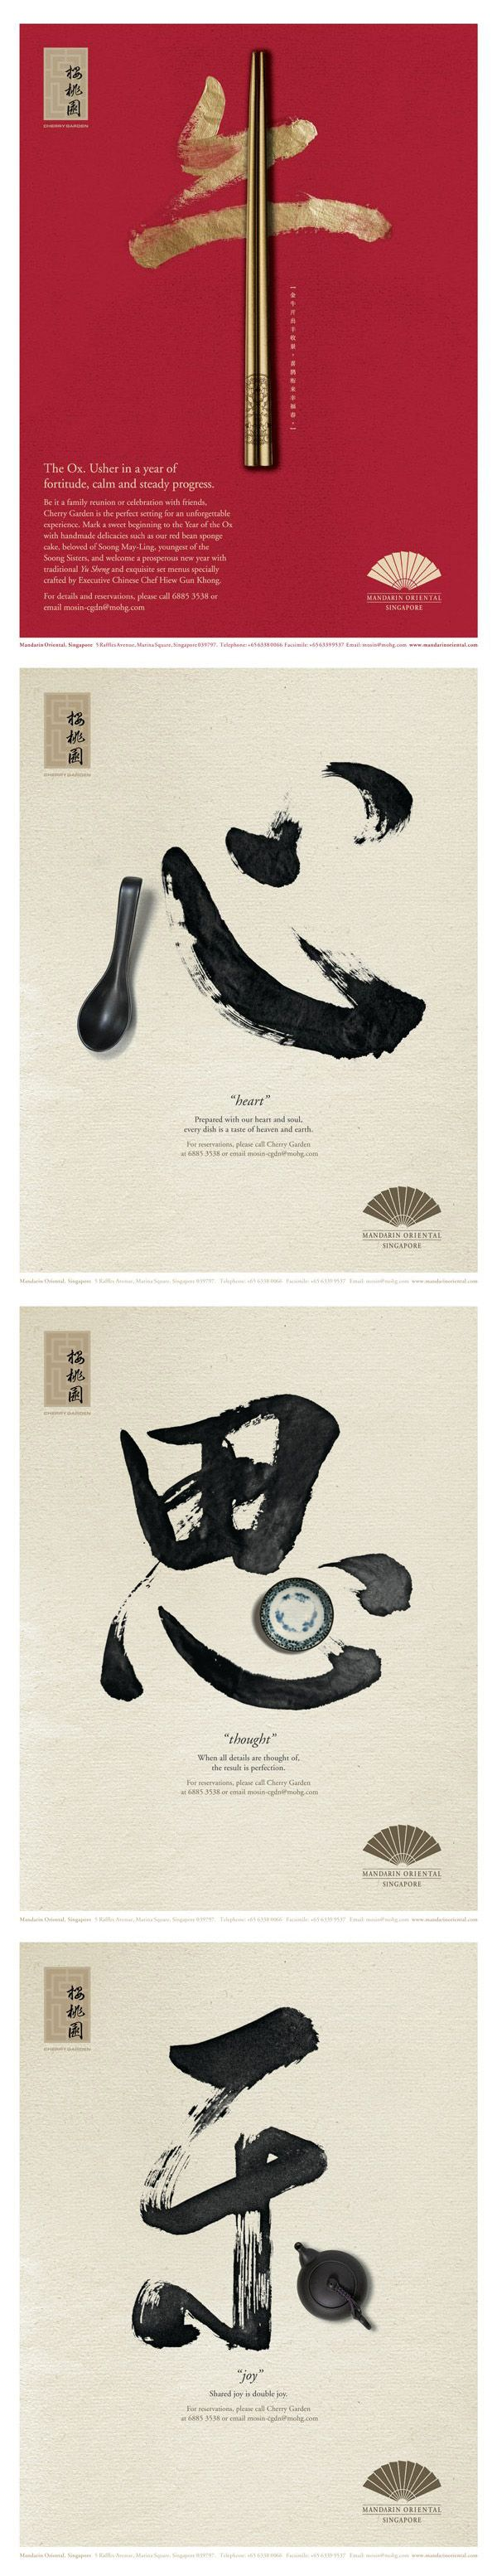 Pin by XU LIANG on poster Japanese graphic design